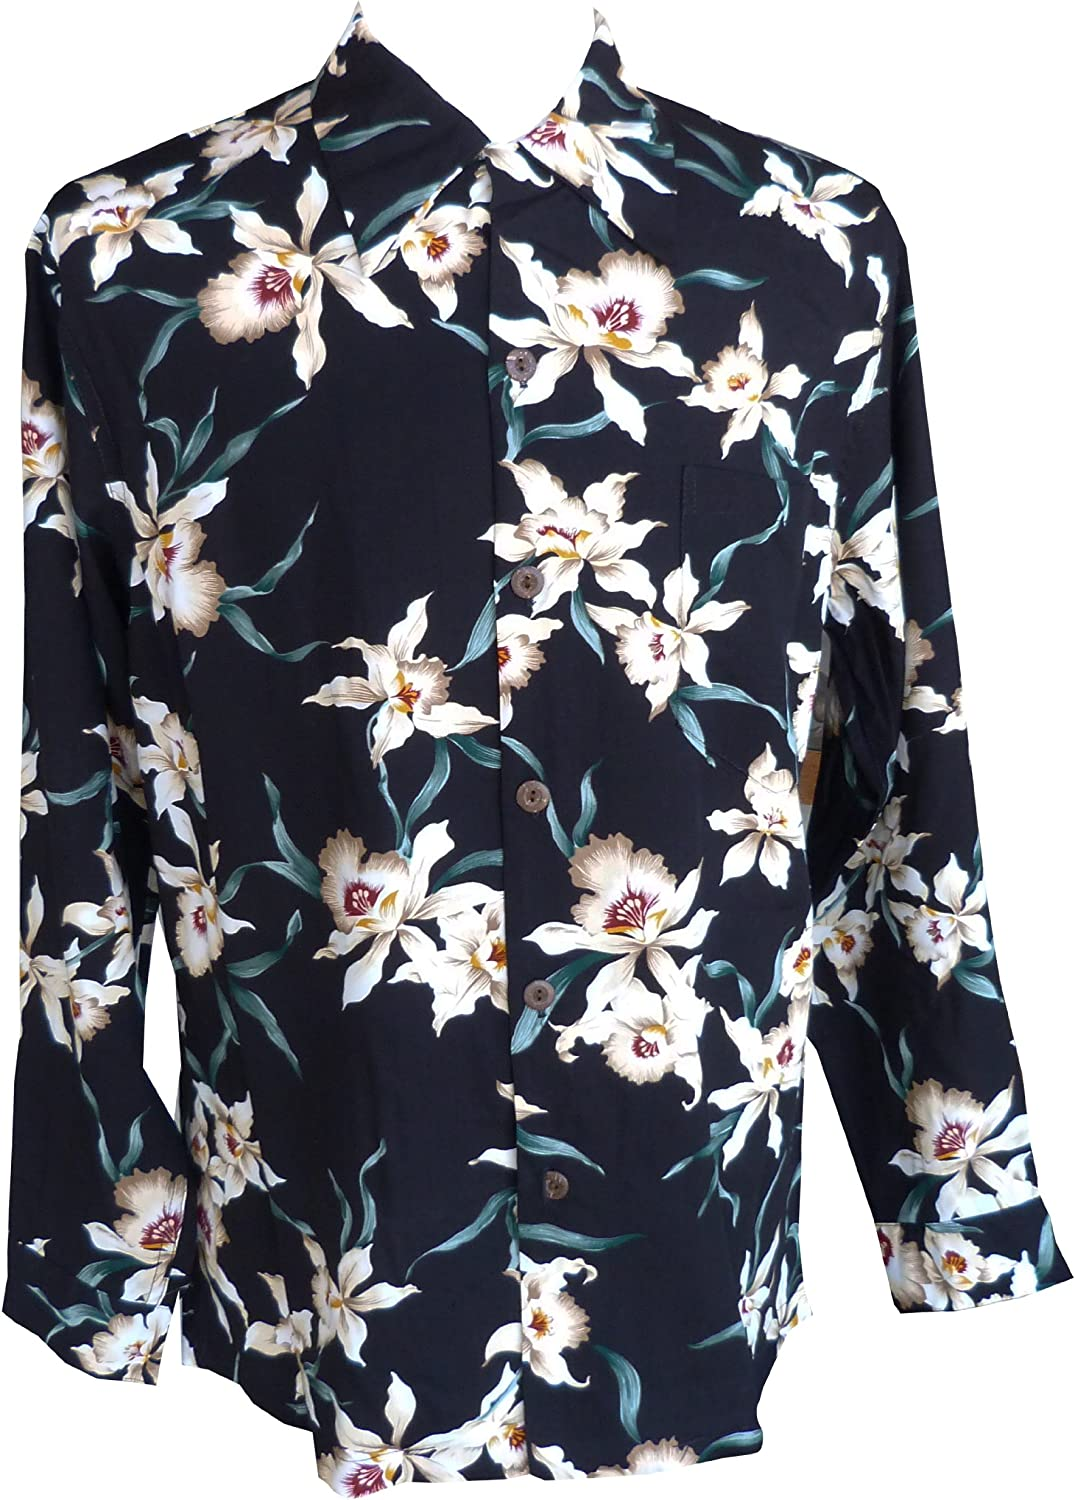 Paradise Found Tulsa Mall Mens Star Orchid Opening large release sale Shi Style Long Sleeve Kamehameha